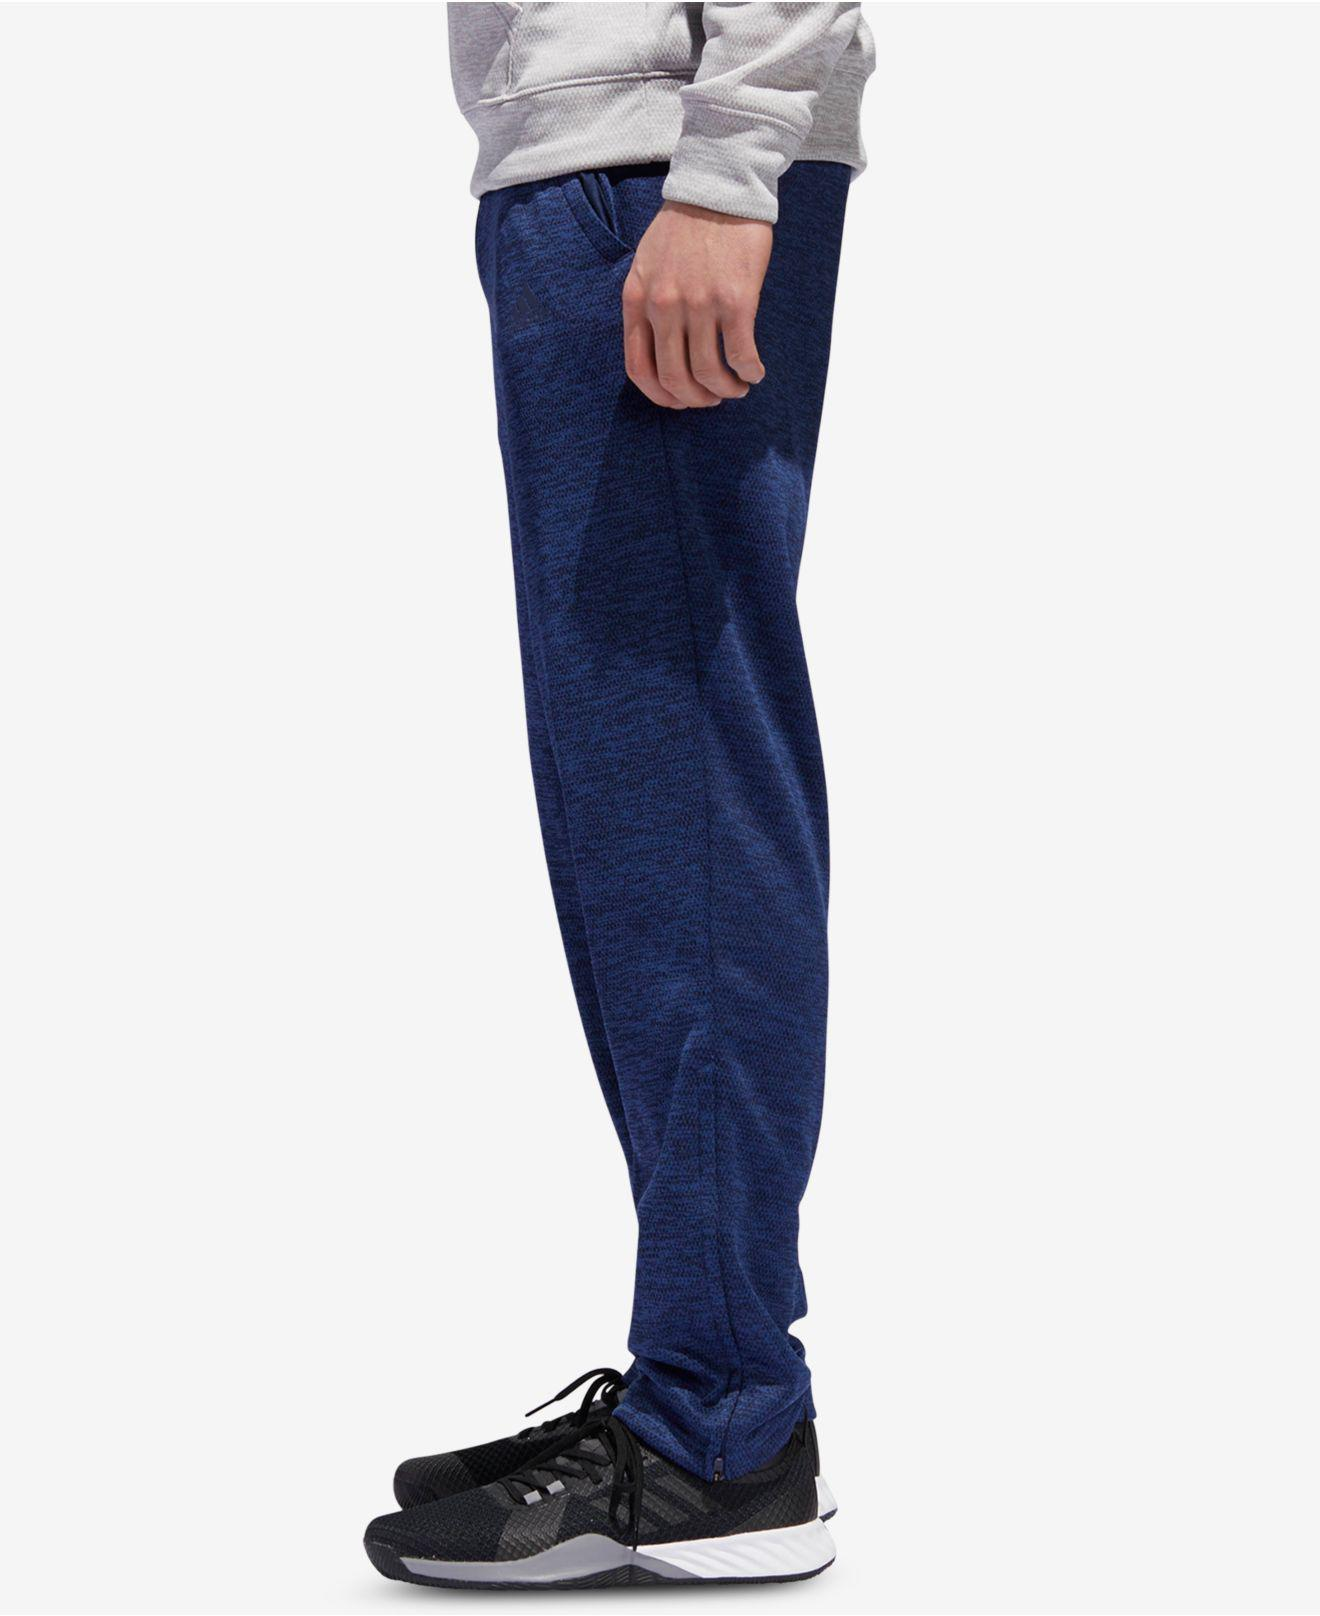 79a332b3a Lyst - adidas Team Issue Tapered Fleece Pants in Blue for Men